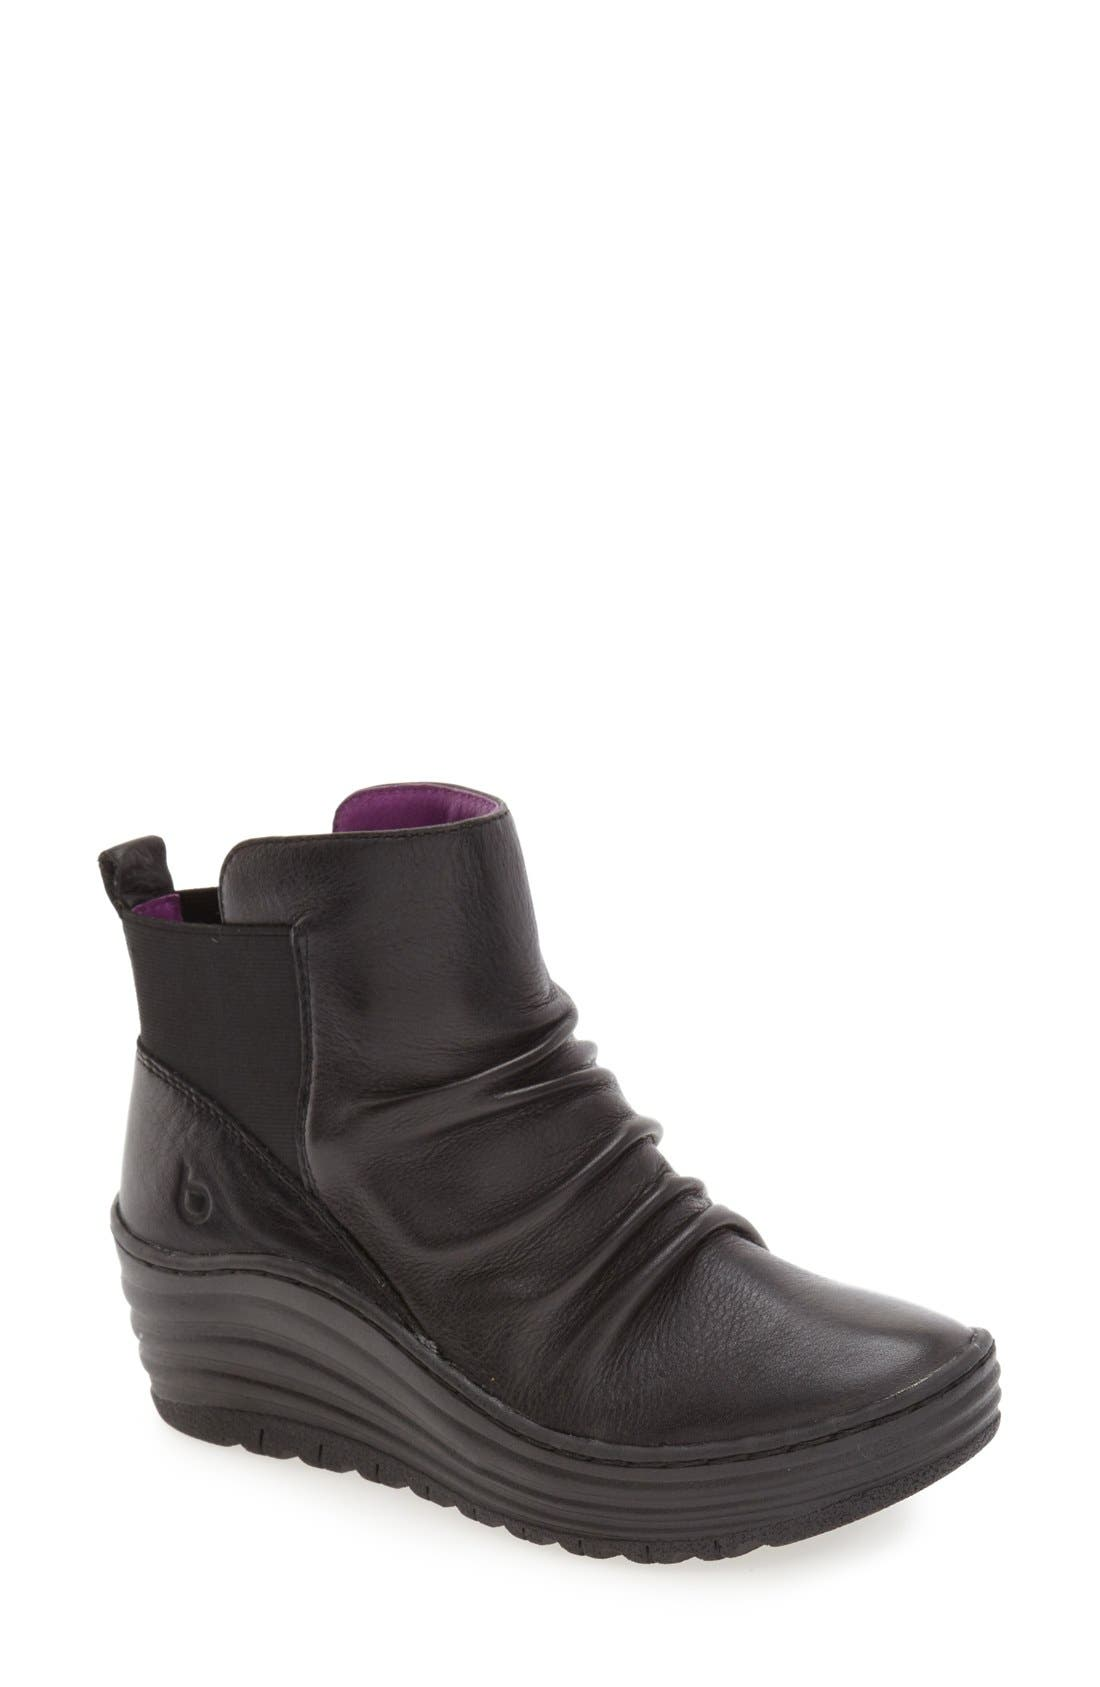 'Gilford' Wedge Bootie,                             Main thumbnail 1, color,                             001